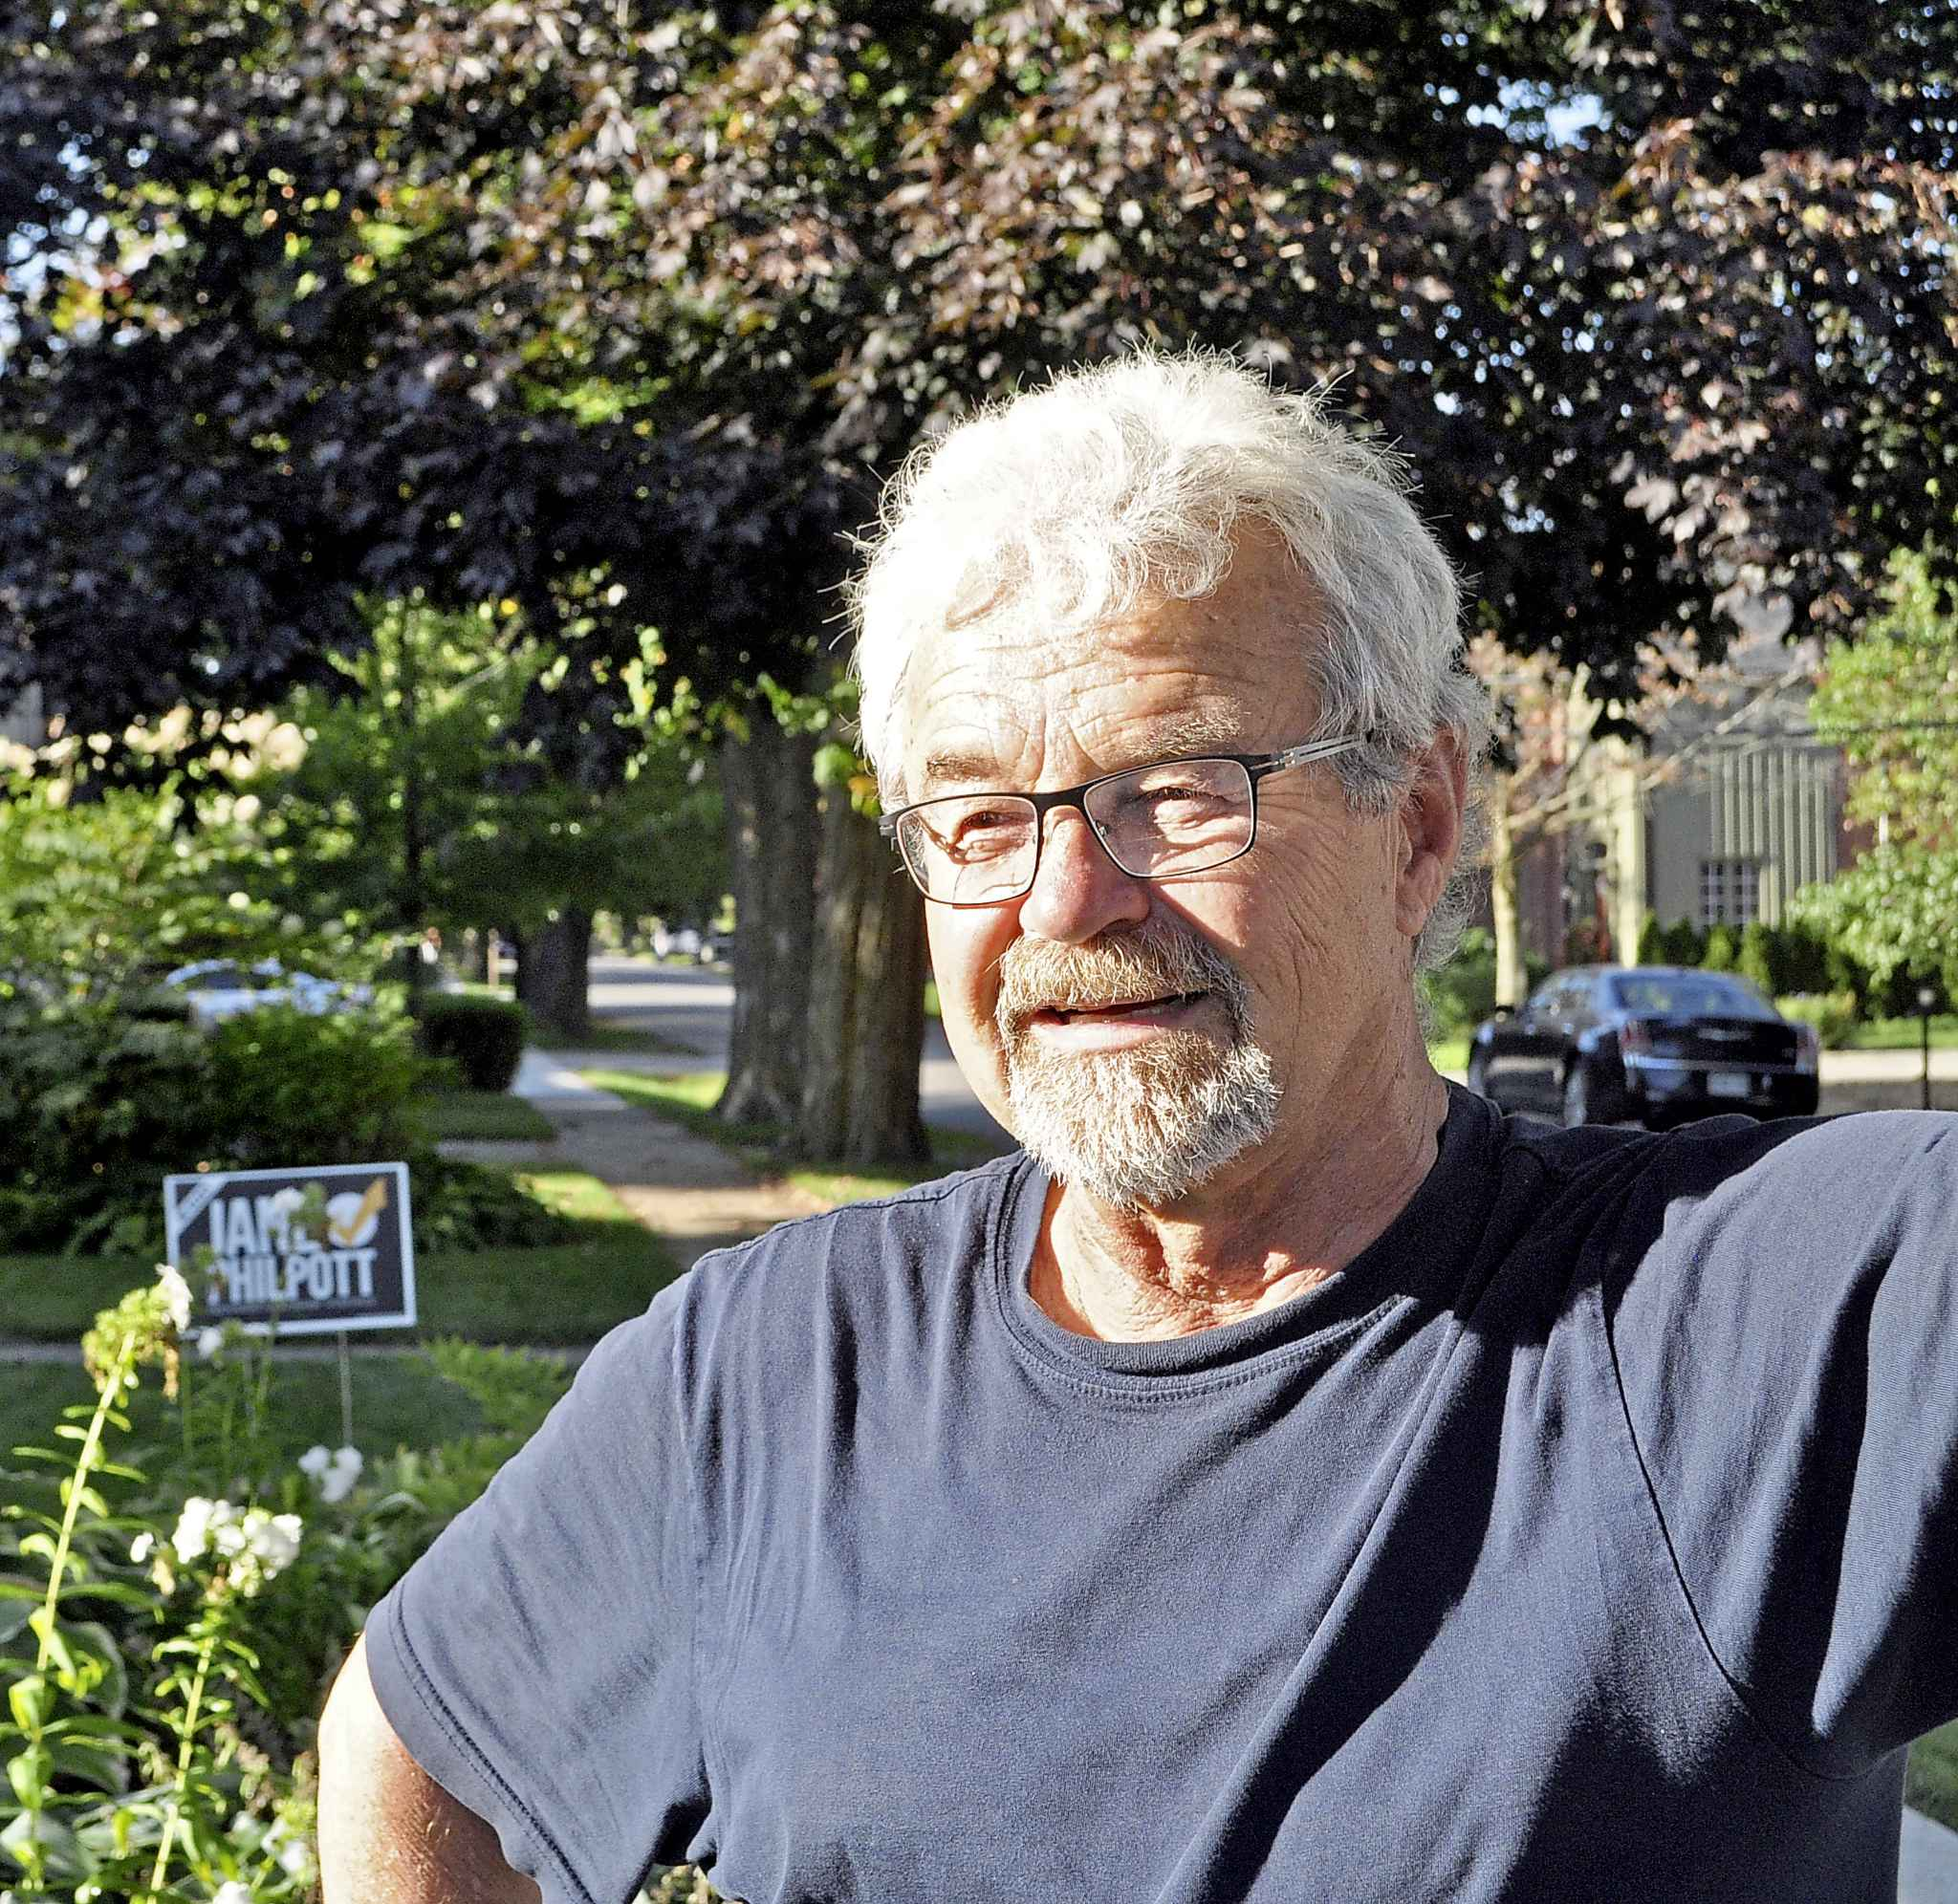 Fred Sauter, 67, a constituent of Markham-Stouffville has voted Liberal his whole life but is now siding with independent candidate Jane Philpott, out of disgust with the party's treatement of her.